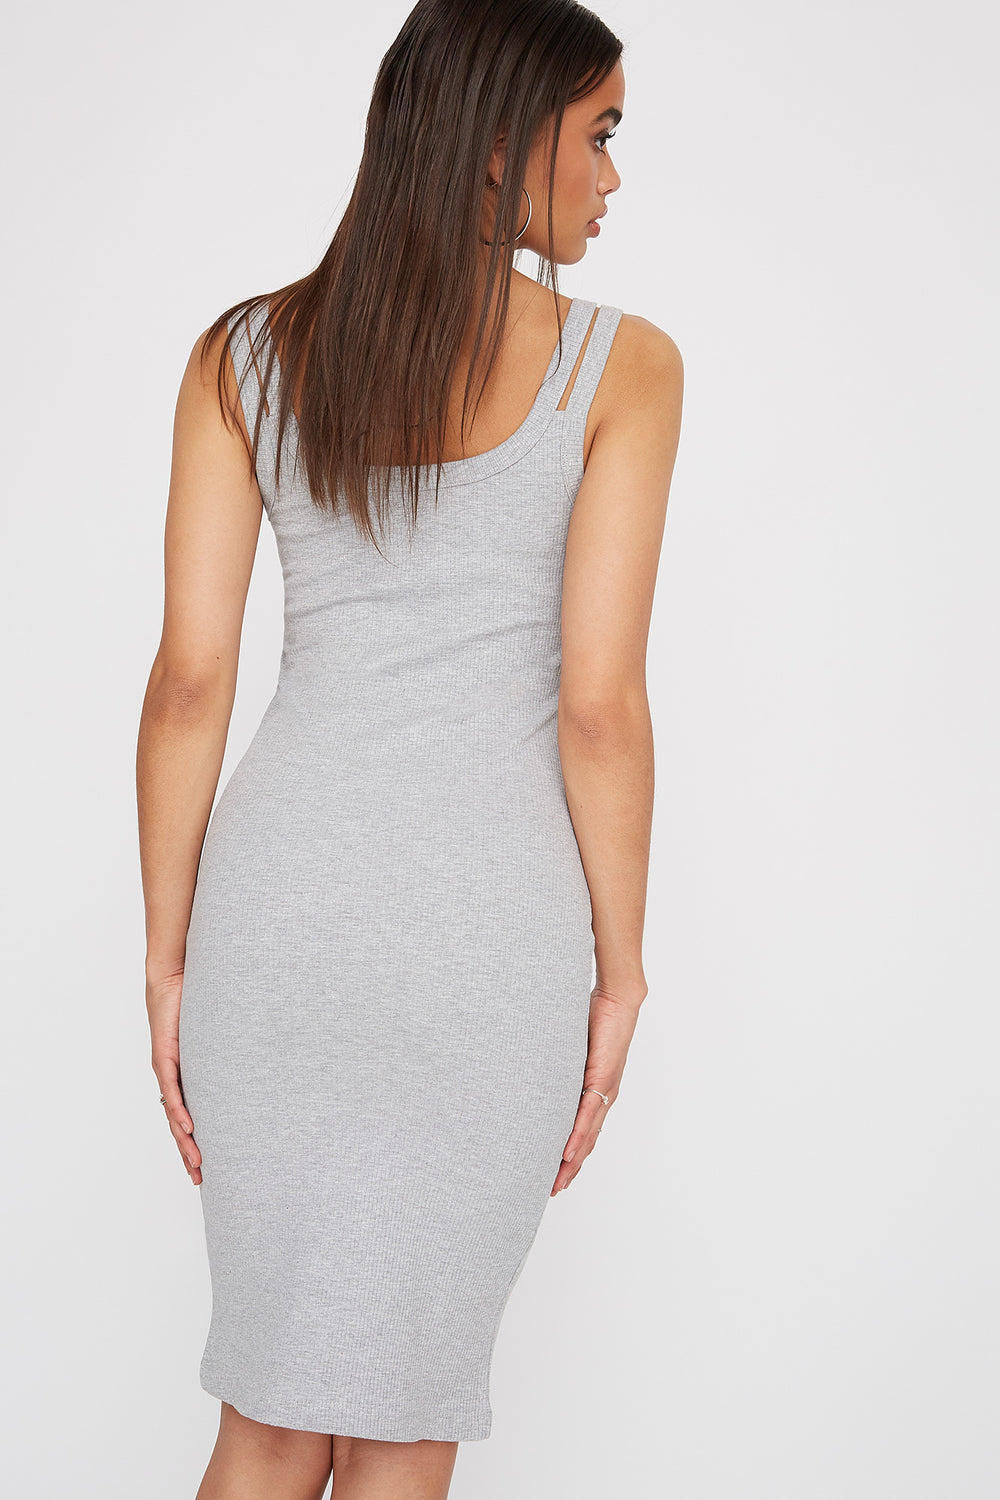 Double Strap Knit Sleeveless Mini Dress Heather Grey